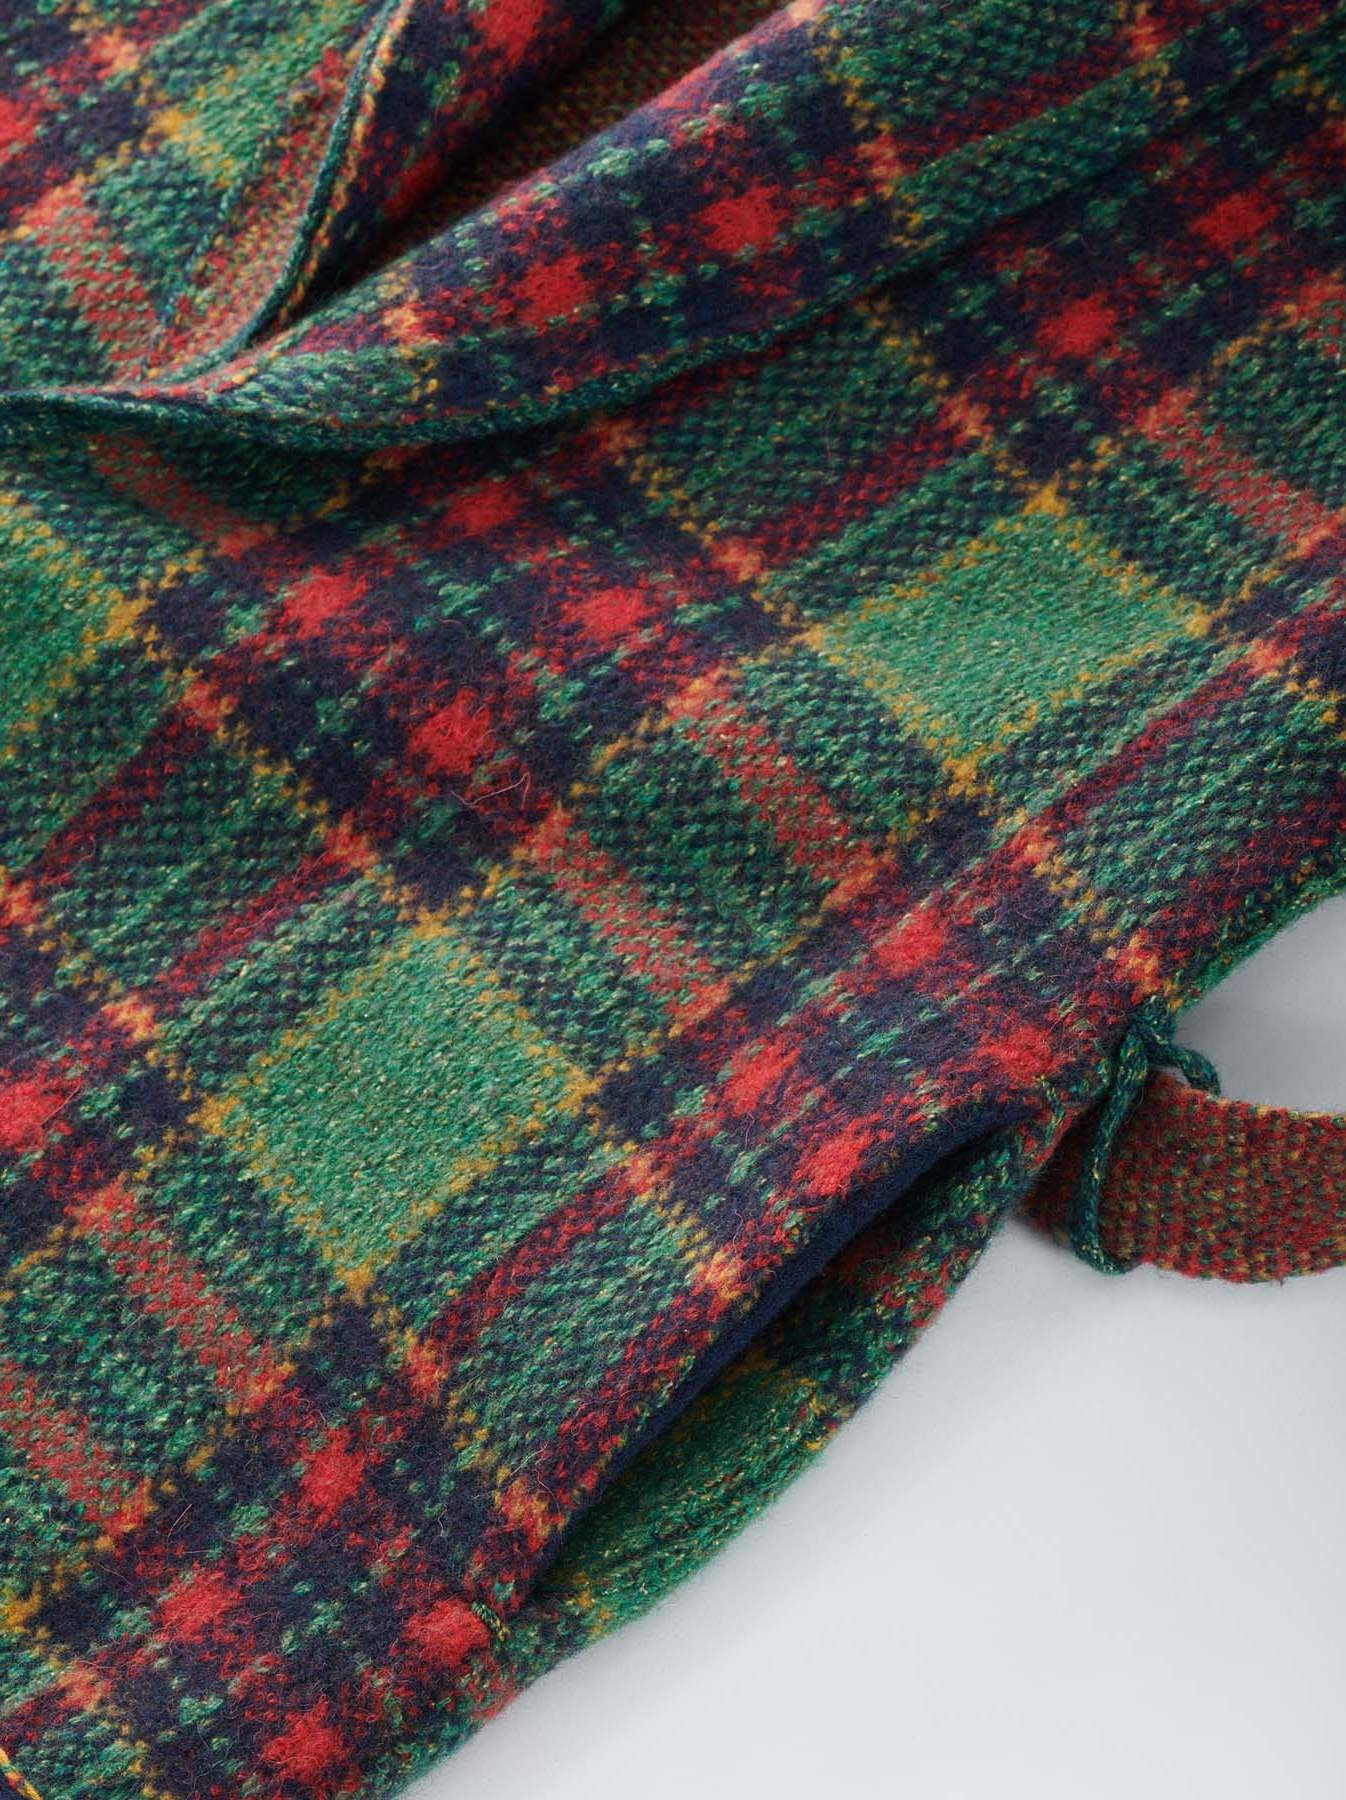 WH Boiled Knit 908 Cowichan-11